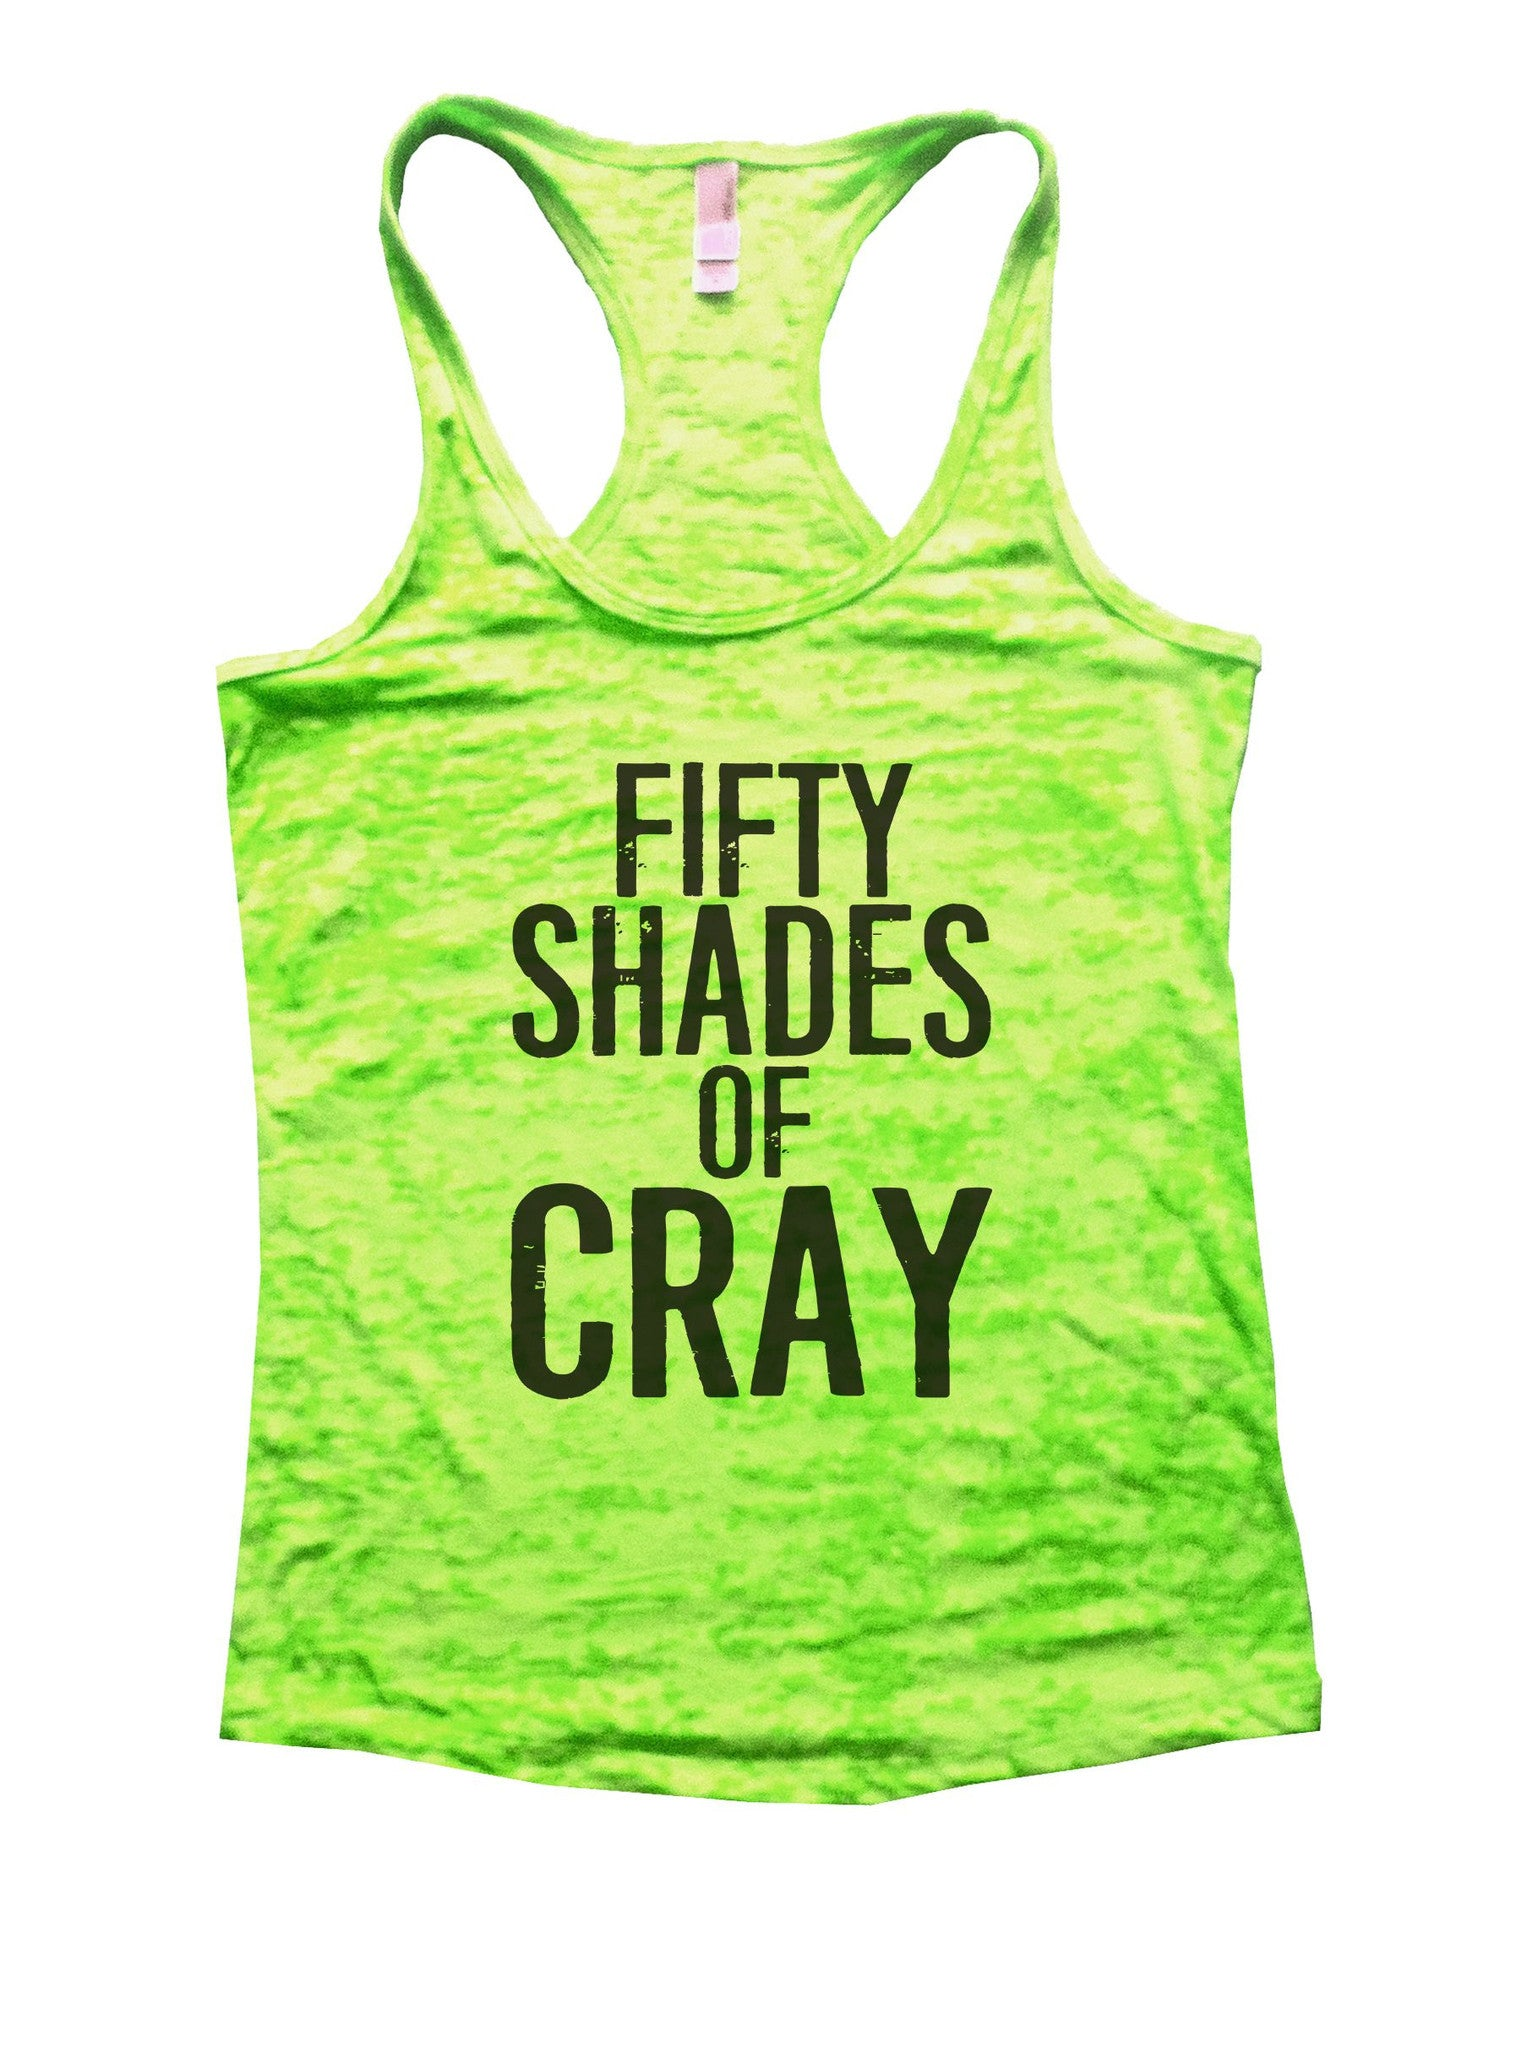 Fifty Shades Of Cray Burnout Tank Top By BurnoutTankTops.com - 1098 - Funny Shirts Tank Tops Burnouts and Triblends  - 1